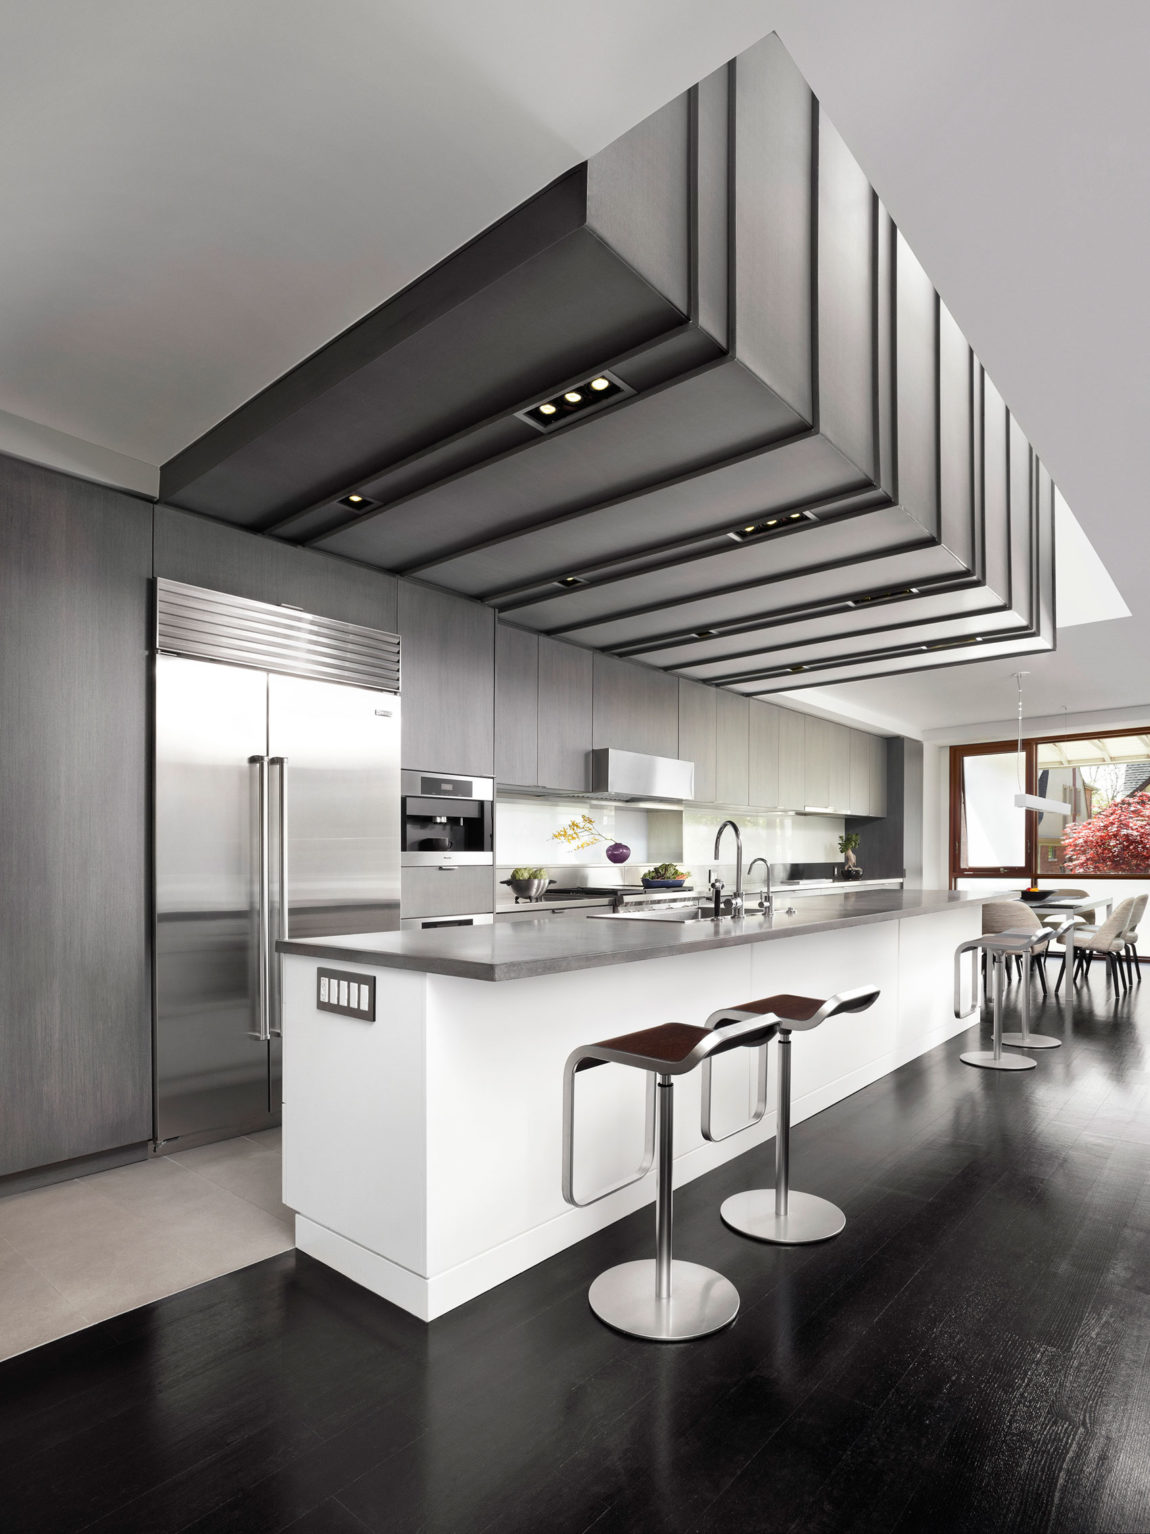 ZN House by + Tongtong (3)